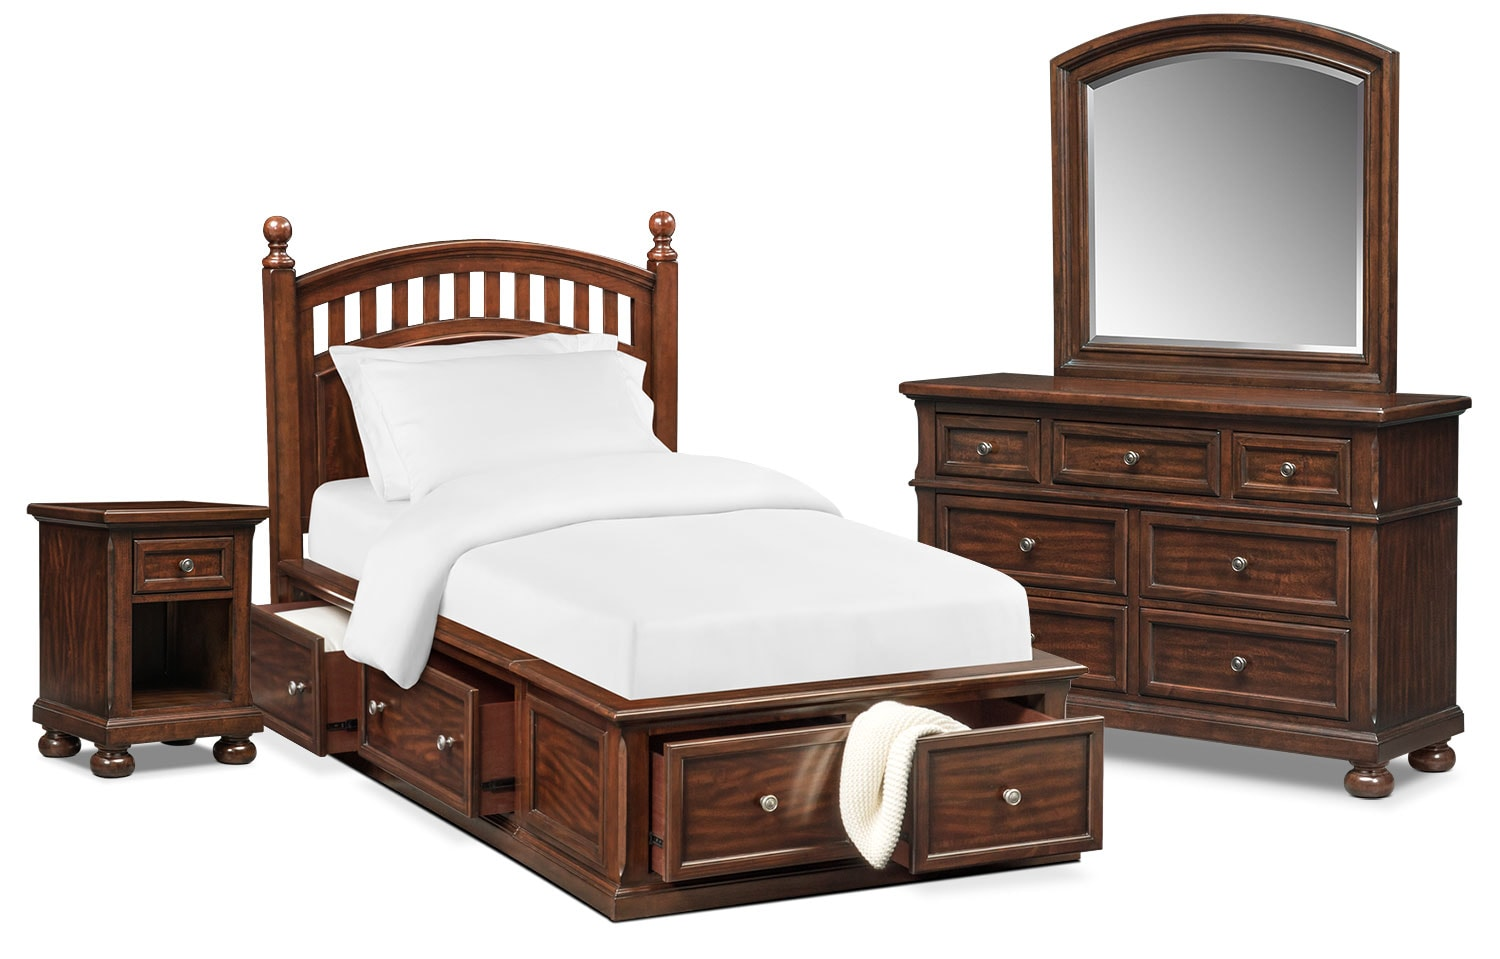 Bedroom Furniture - Hanover Youth 6-Piece Full Poster Bedroom Set with Storage - Cherry